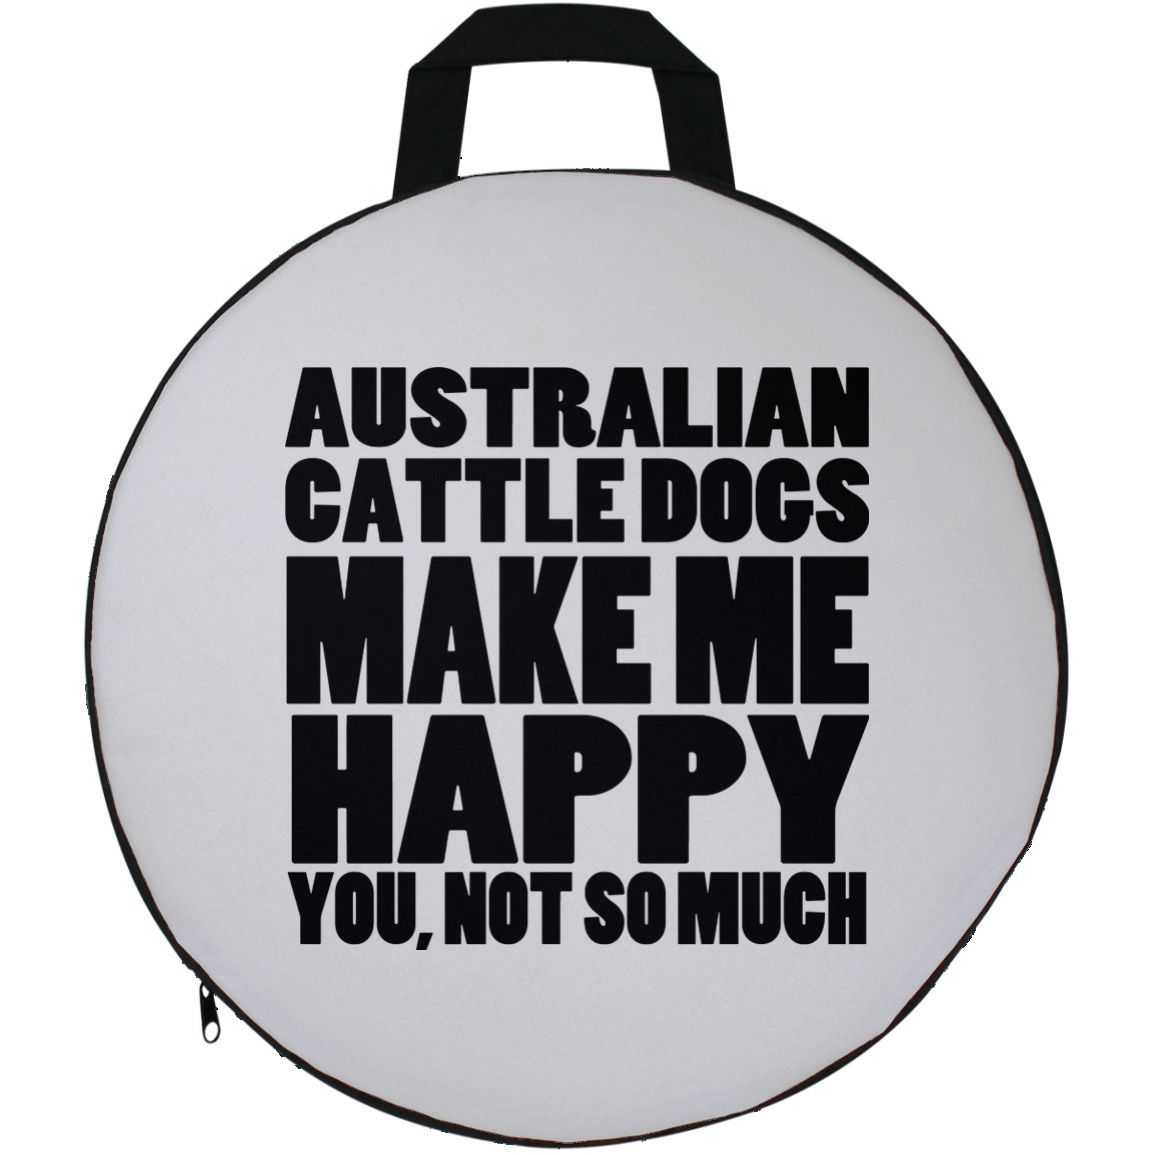 Australian Cattle Dogs Make Me Happy You Not So Much Round Seat Cushion